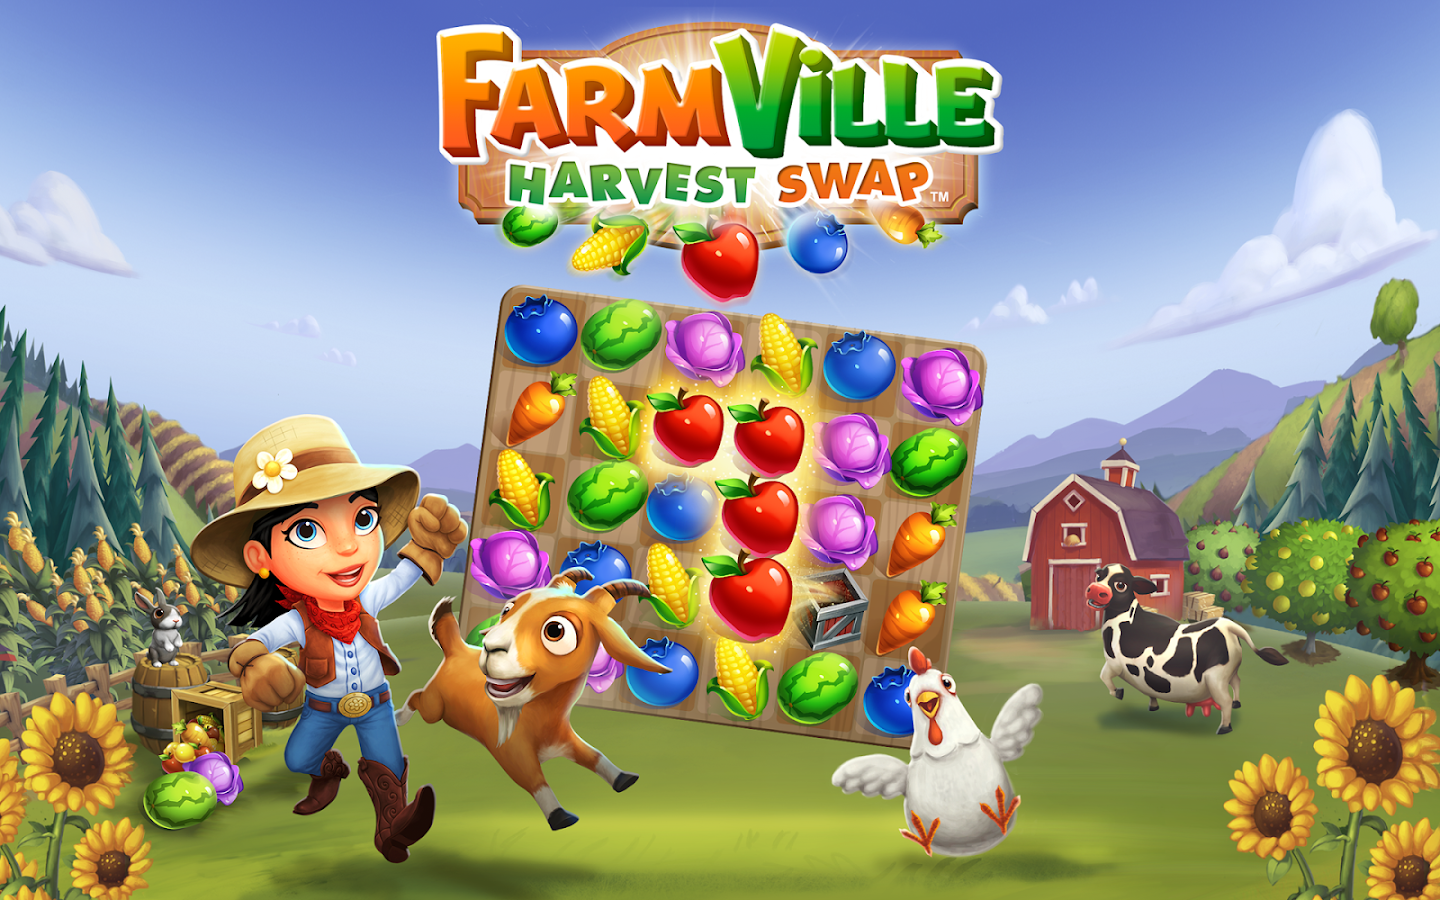 FarmVille: Harvest Swap Screenshot 17